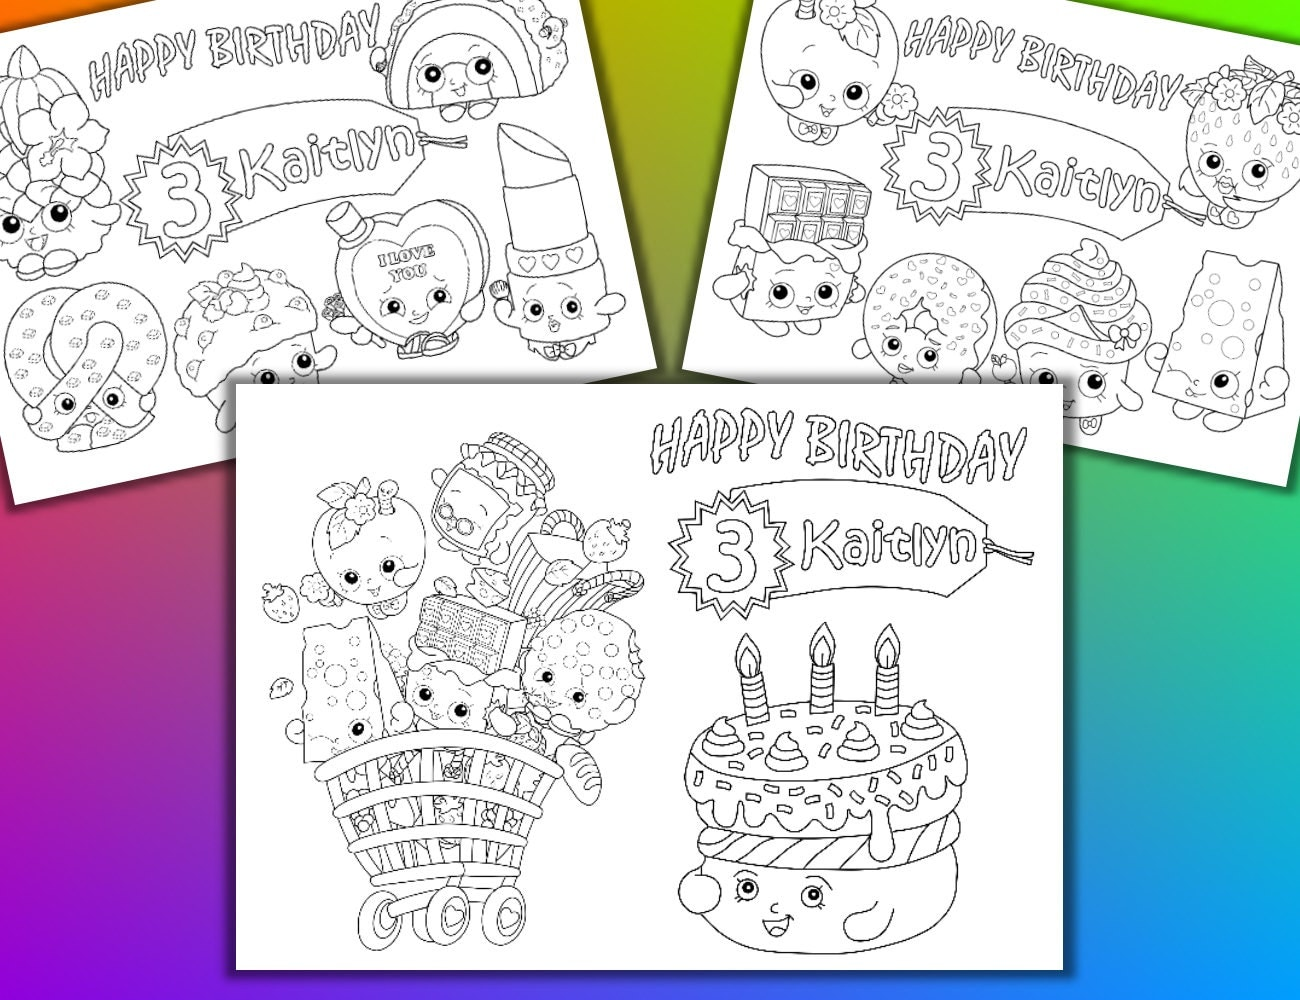 Shopkins coloring pages to print out -  Shopkins Coloring Pages Pdf File Zoom